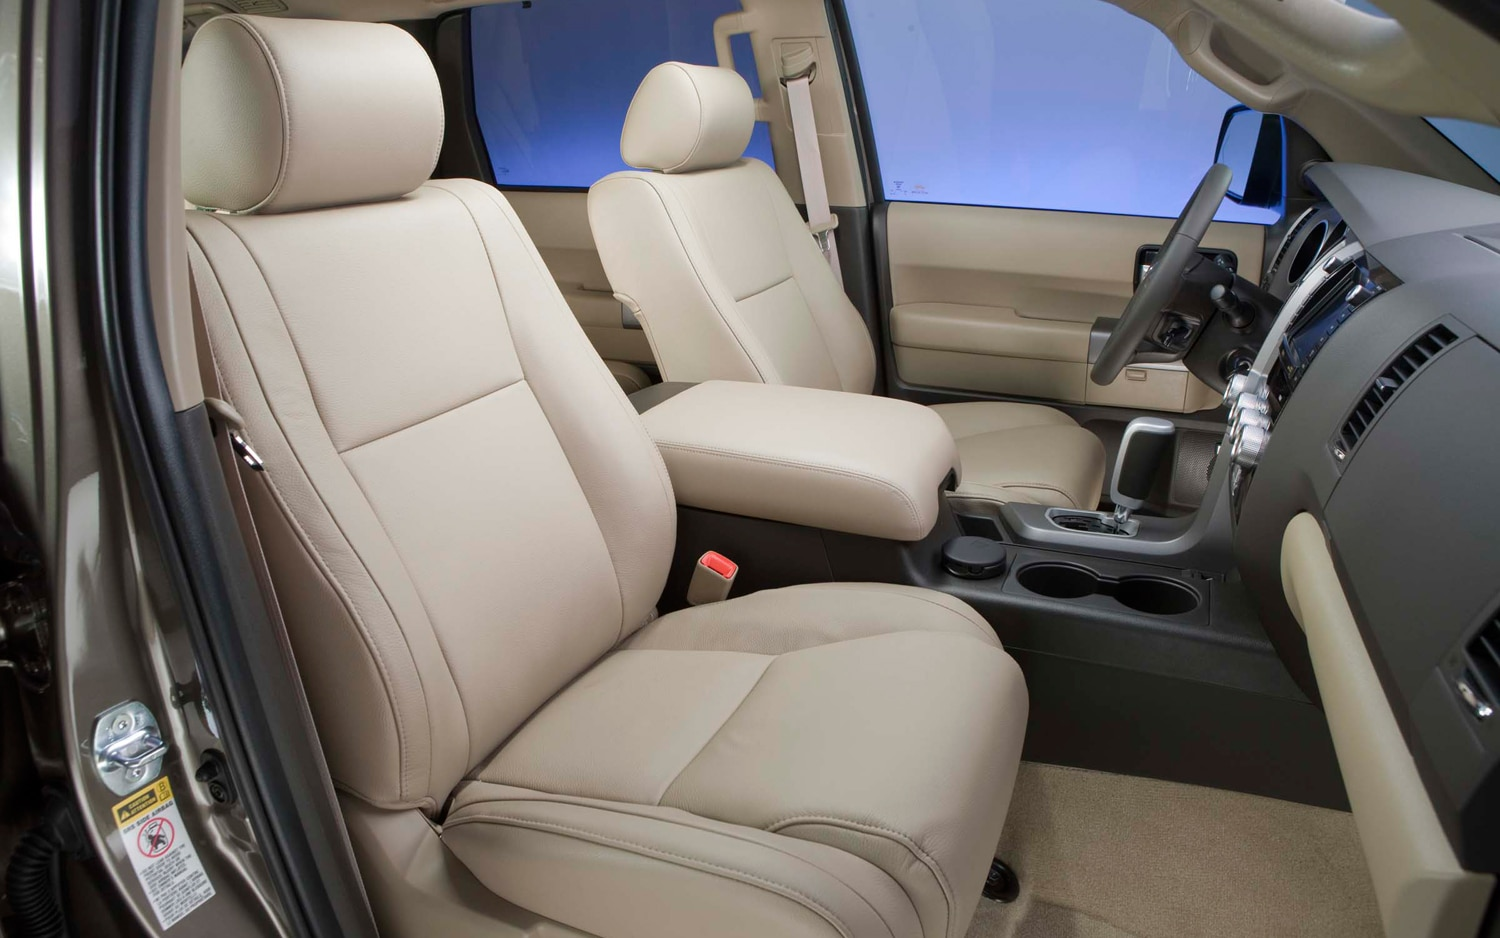 2012 Toyota Sequoia Interior